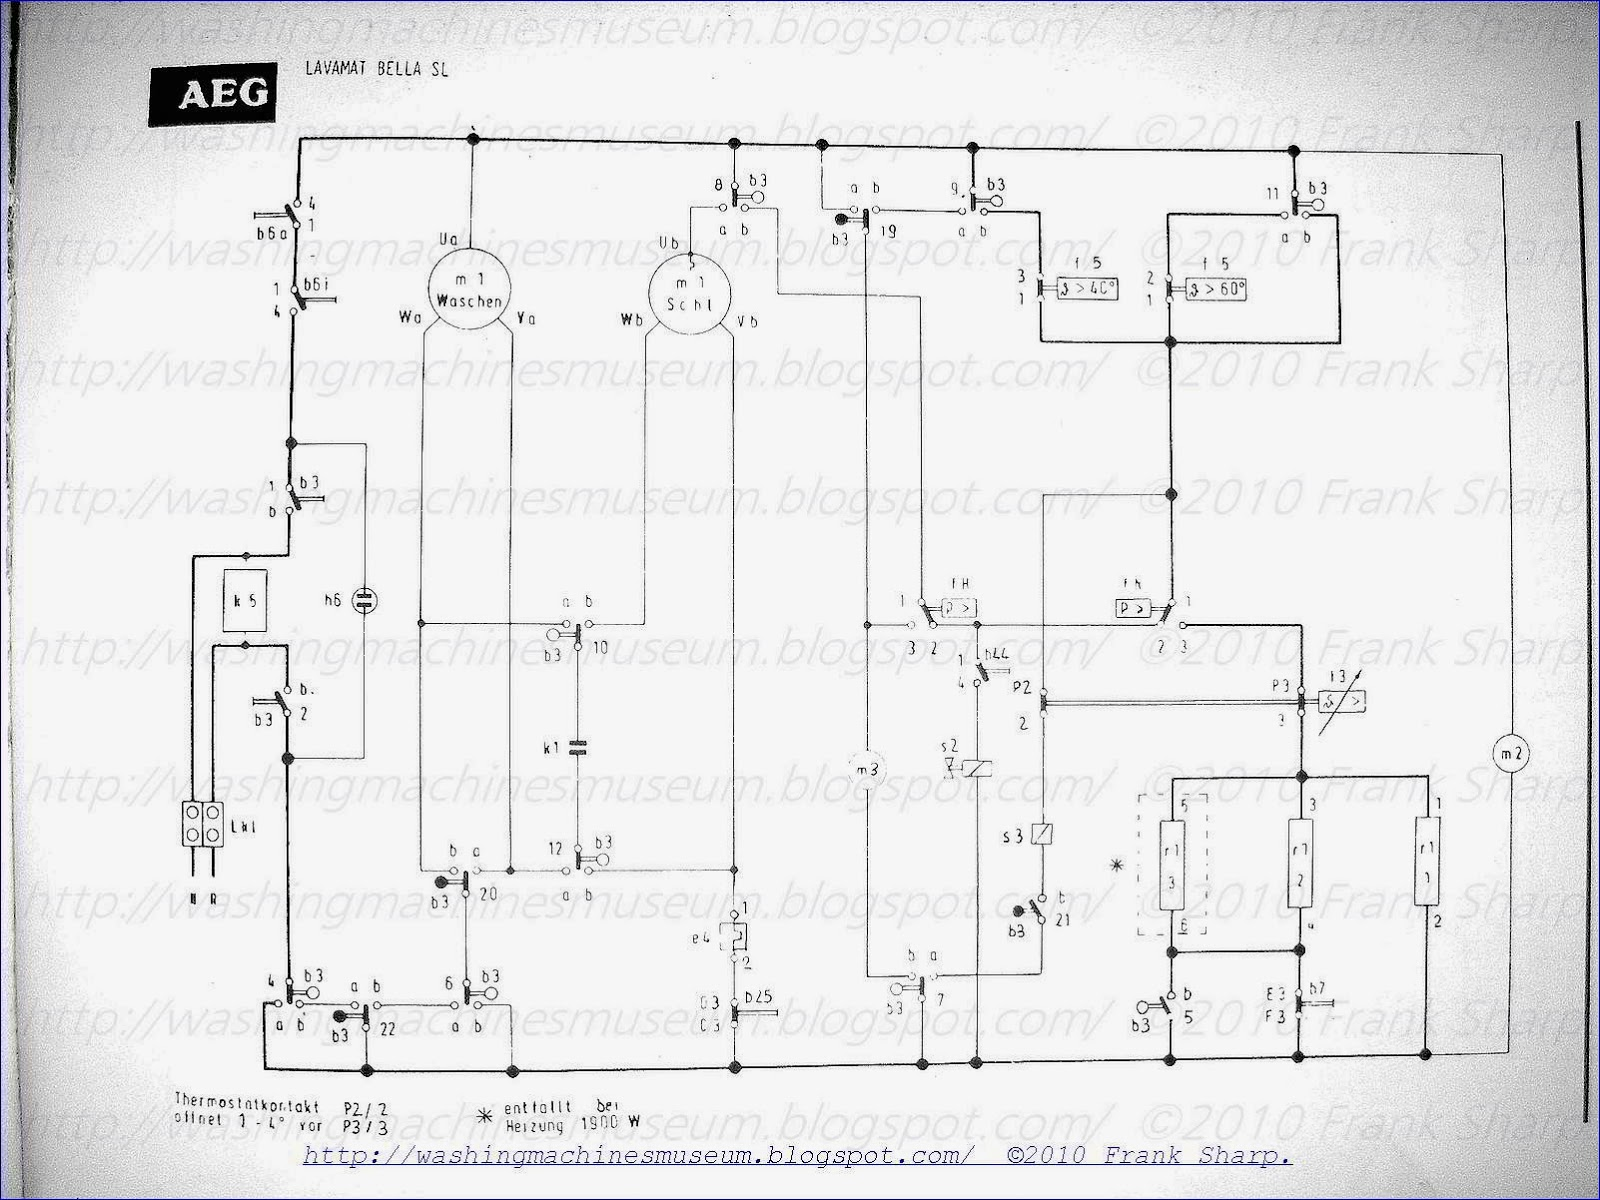 hight resolution of sharp washing machine wiring diagram wiring diagram info aeg washing machine motor wiring diagram aeg washing machine wiring diagram